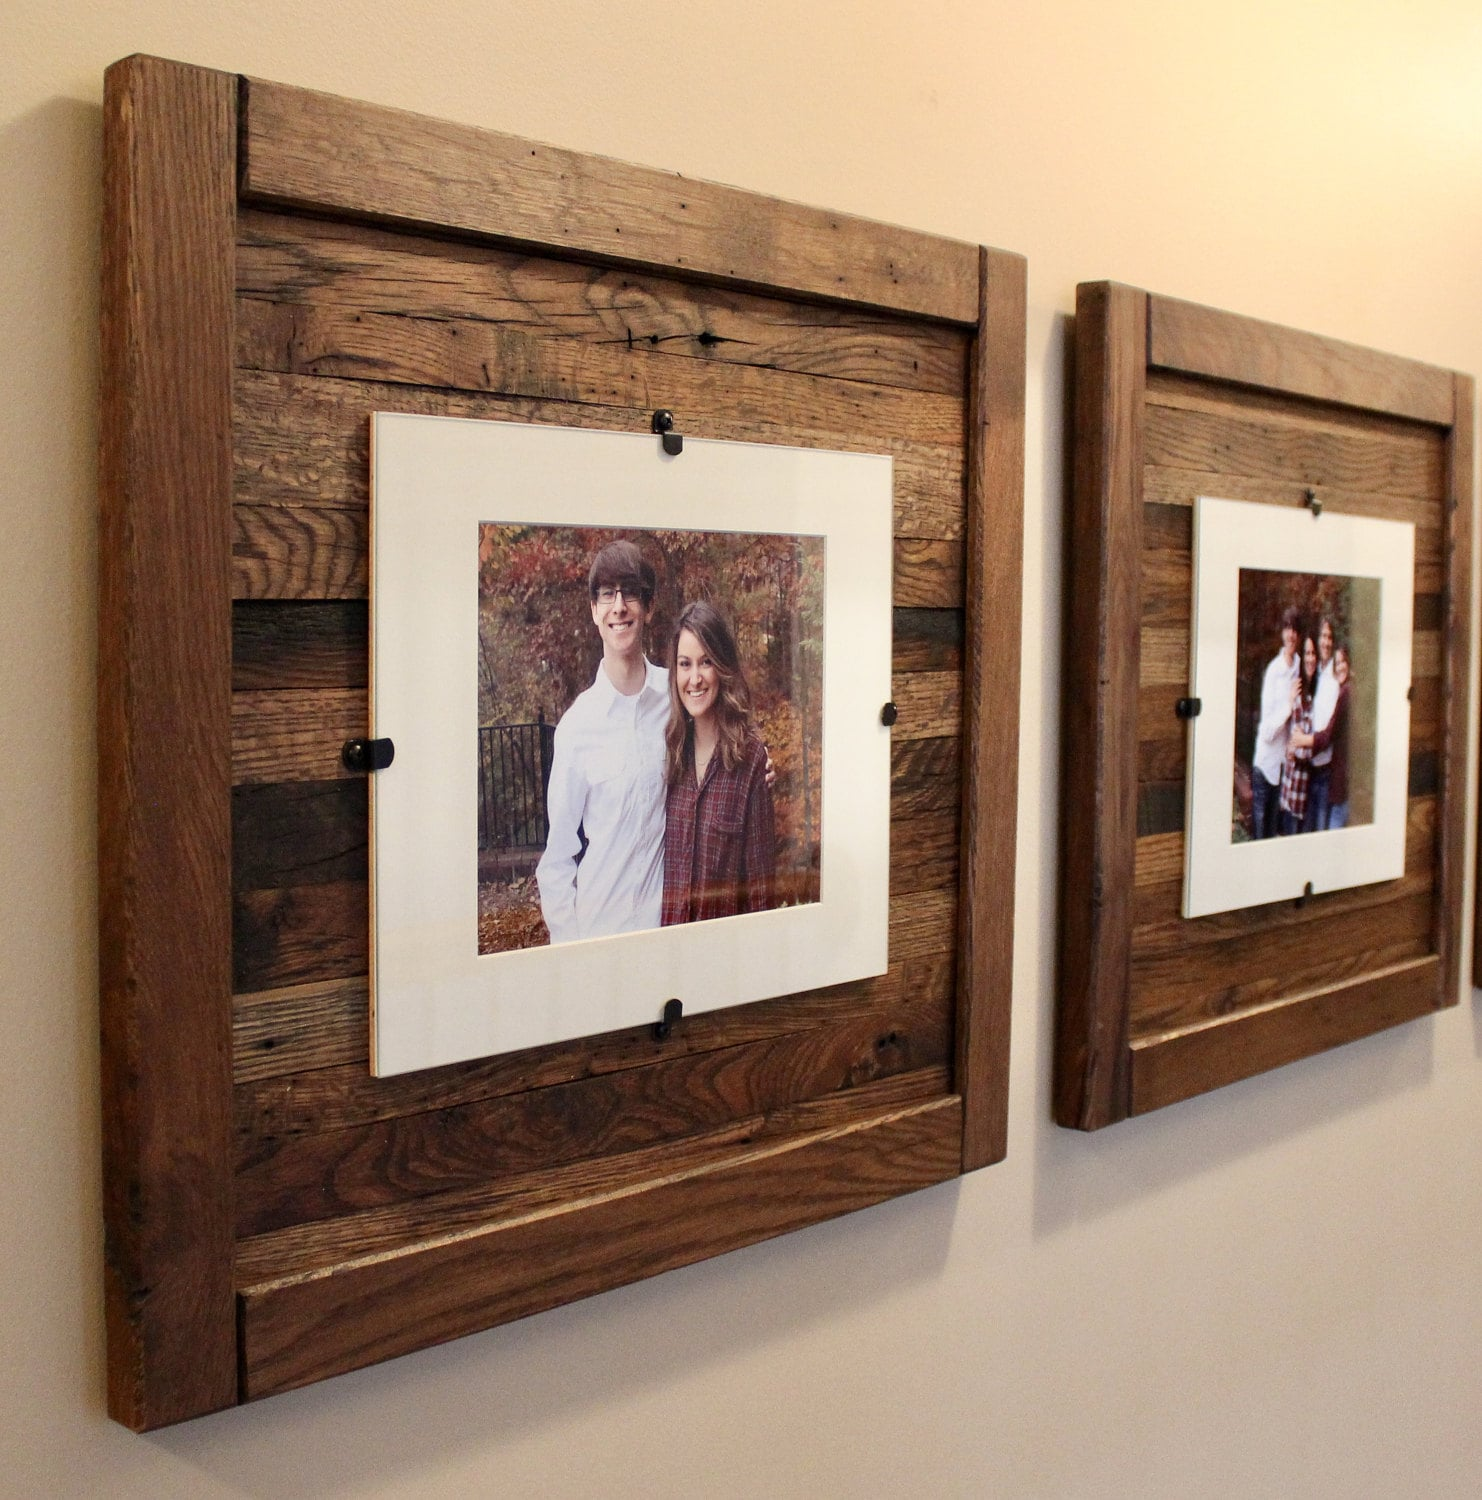 Mind X Rustic Frames 16x20 Rustic Frames Uk Reclaimed Wood Rustic Wood Set X Framewith X Frame Without Free Reclaimed Wood Rustic Wood Set houzz 01 Rustic Picture Frames